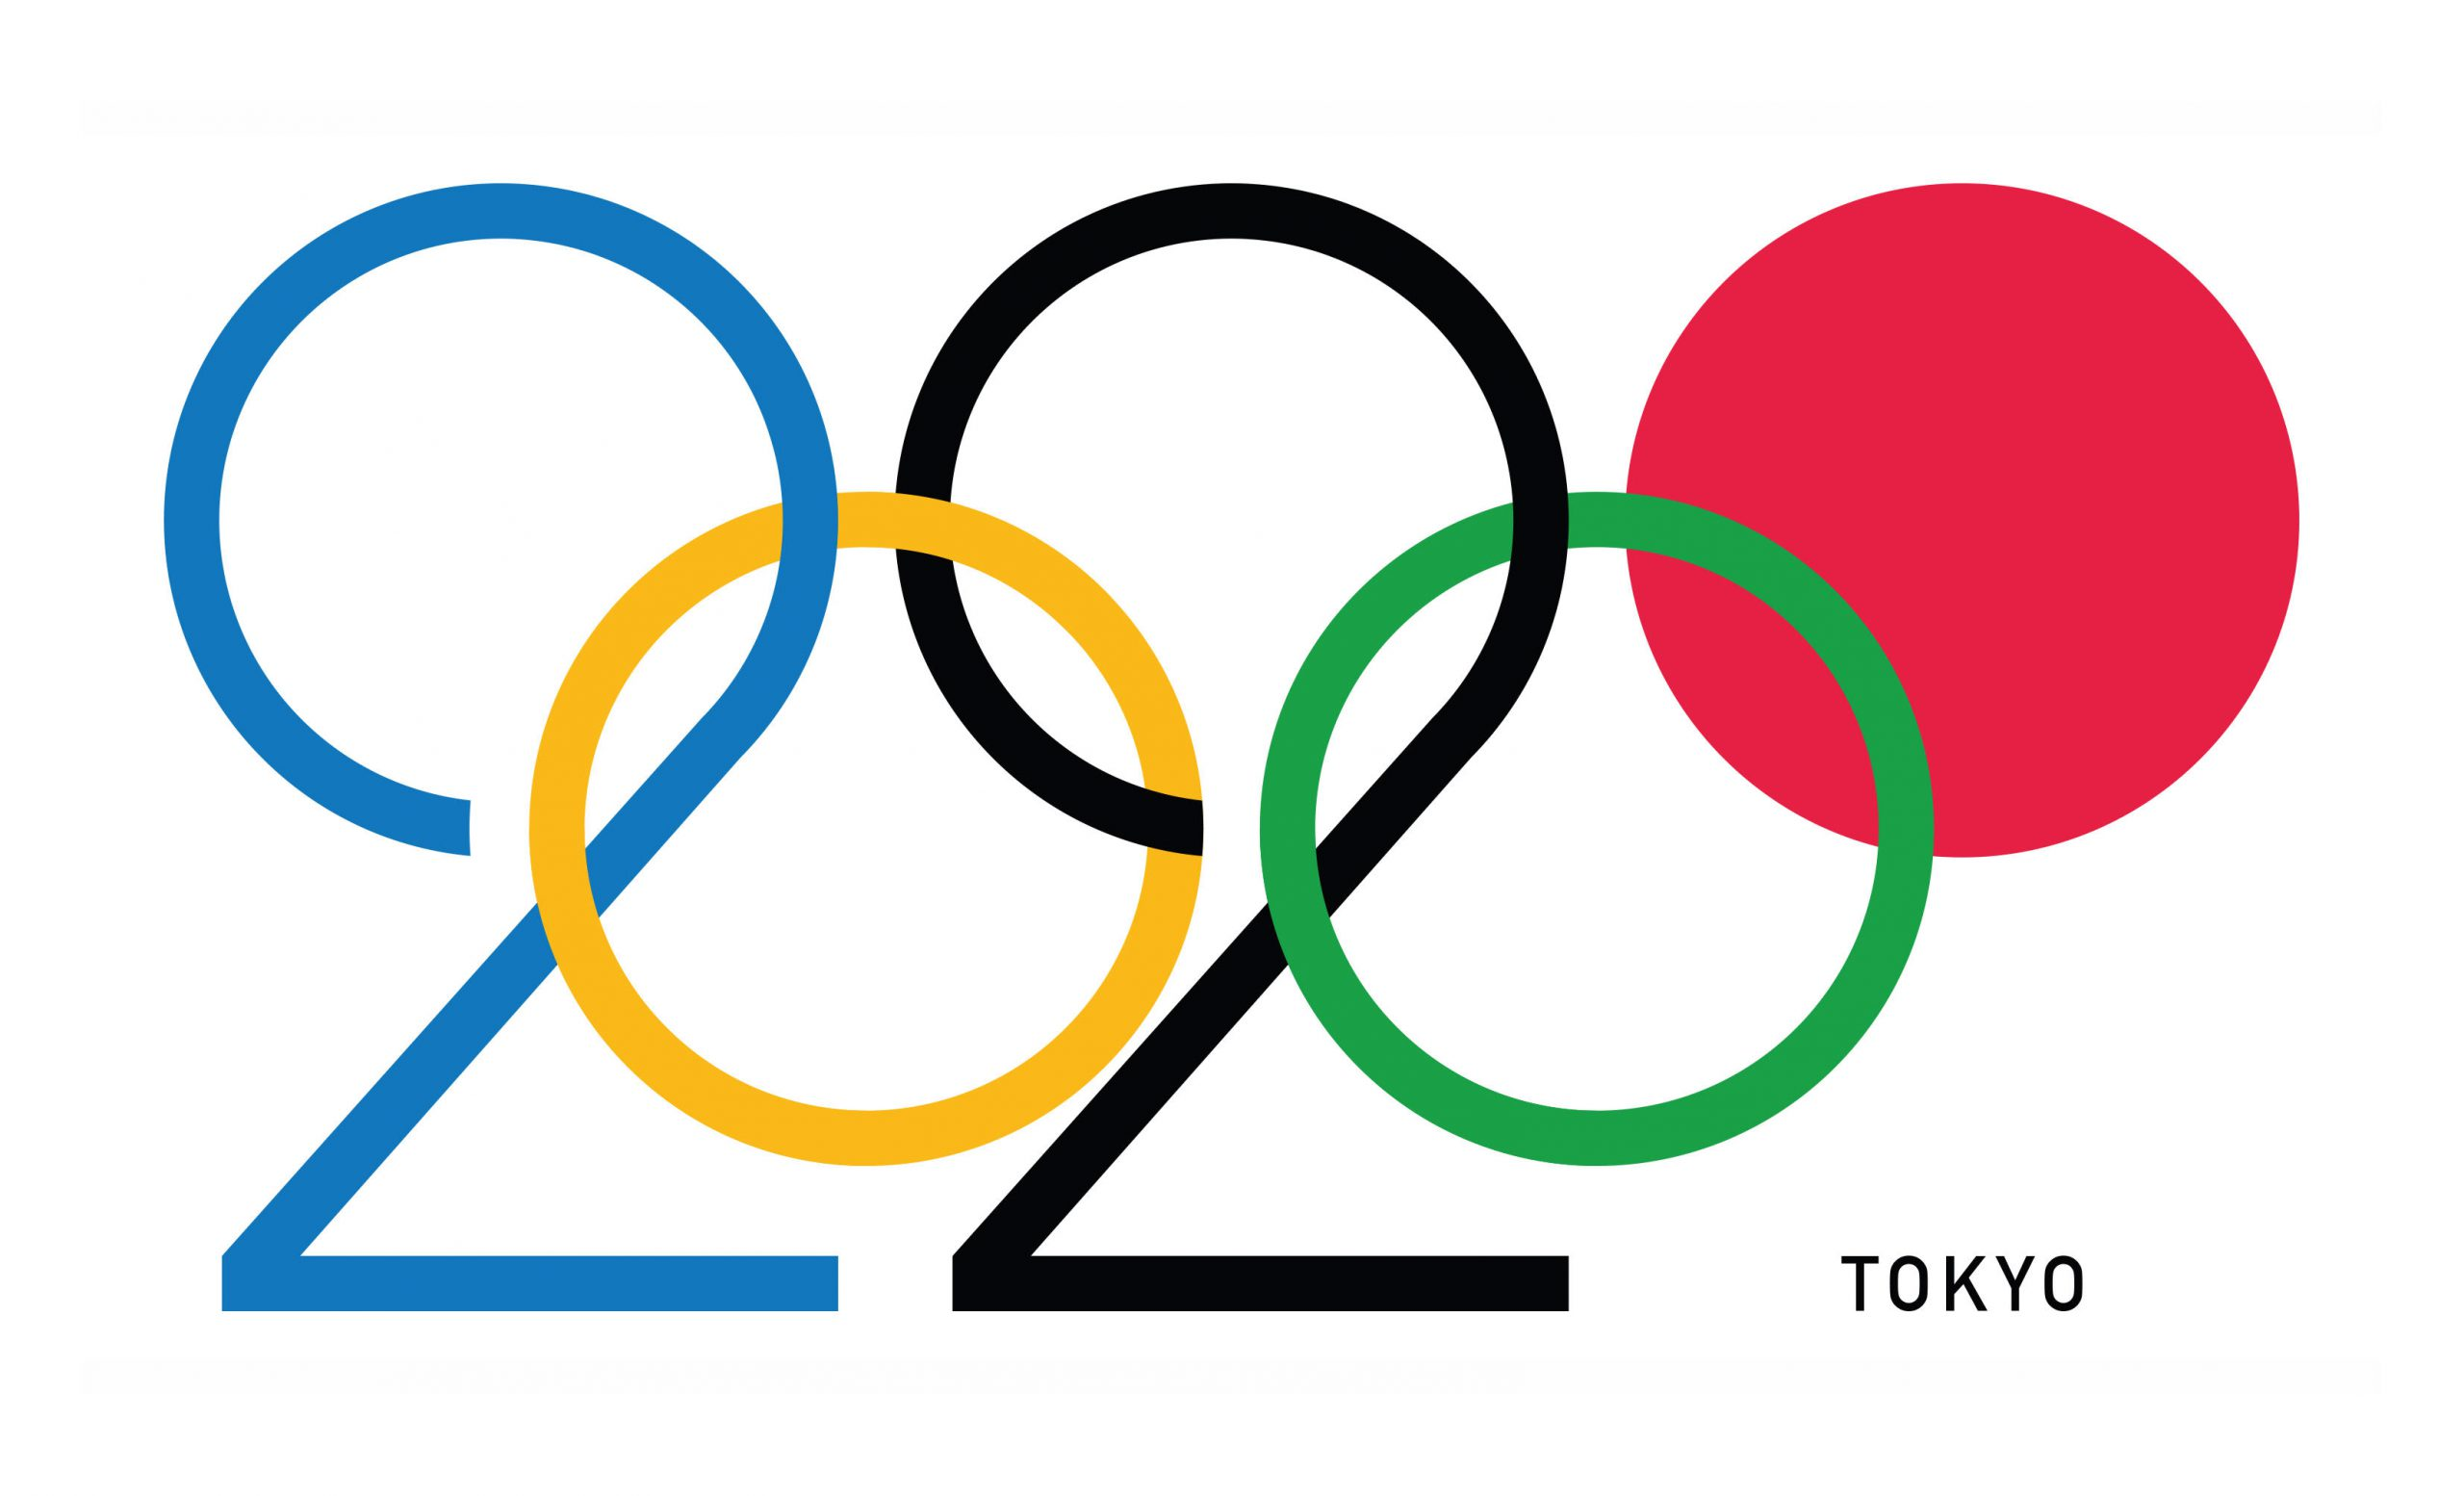 Amendments to the Tokyo 2020 Olympic Qualification Process